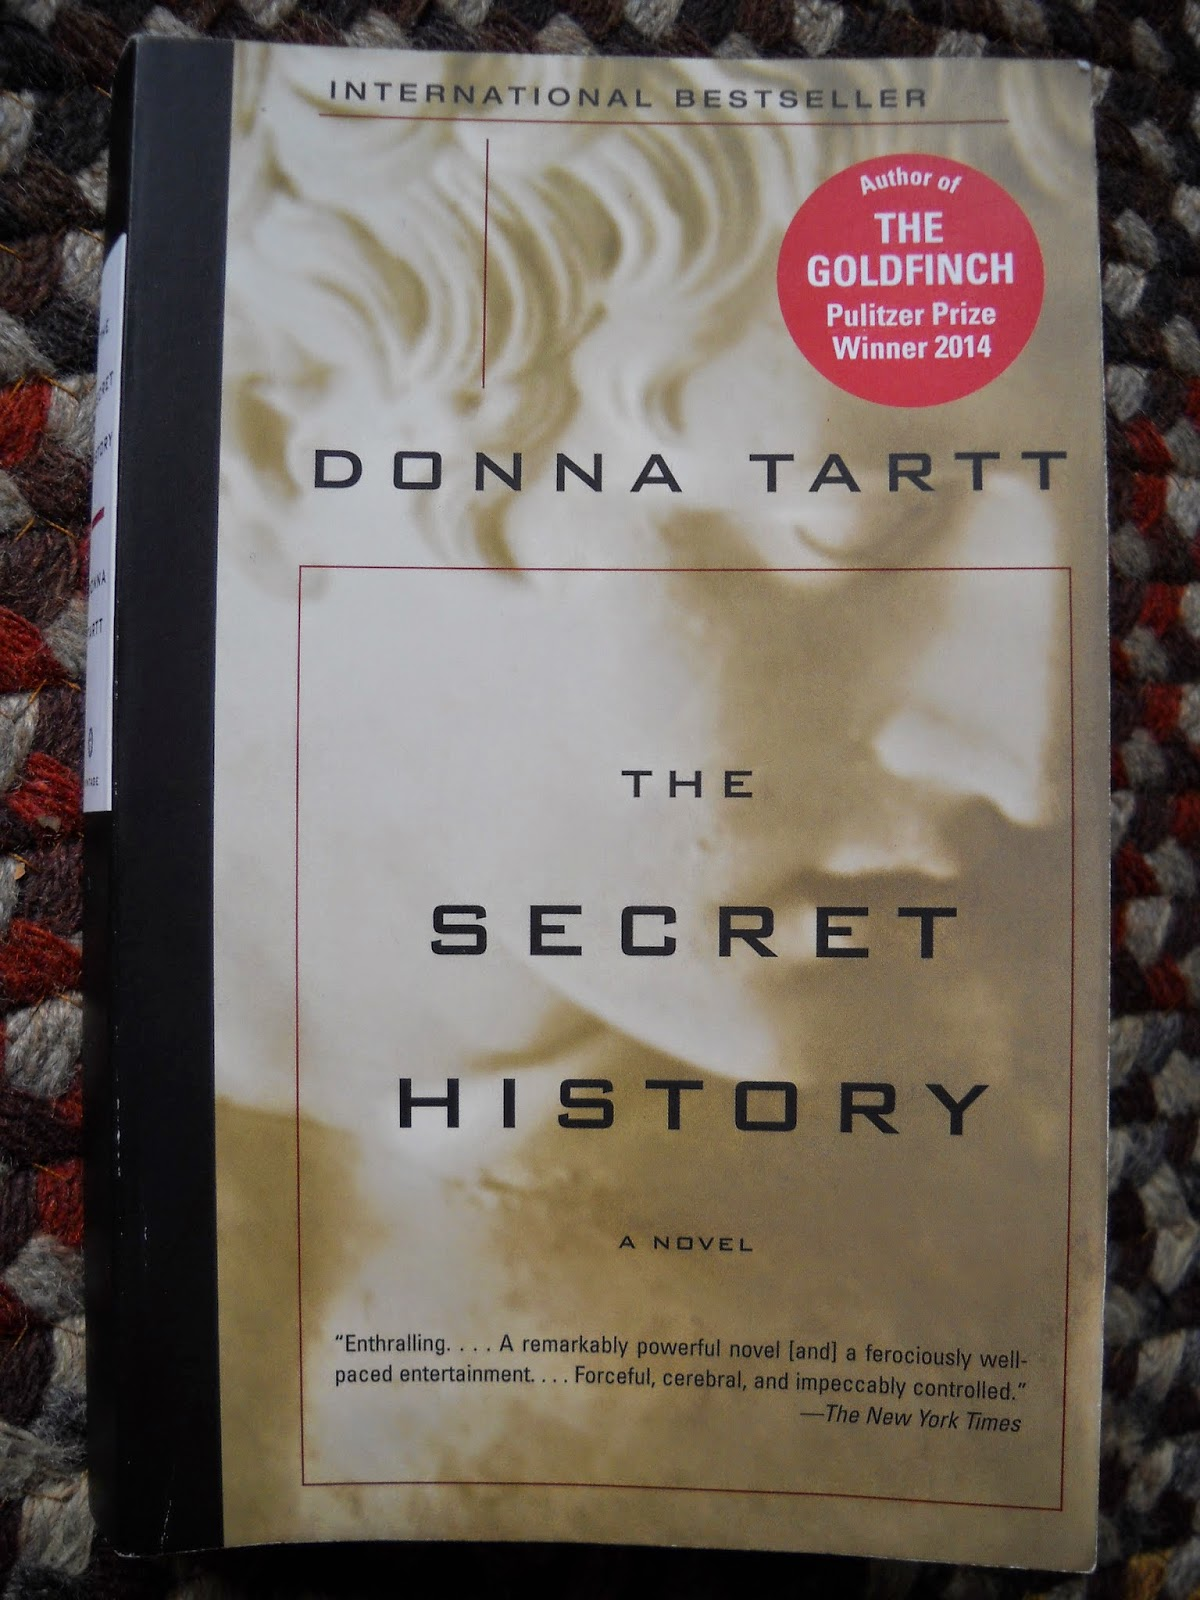 the death of bunny in the secret history a story by donna tart I read the secret diaries first and then discovered the secret history many years later when someone on the internet mentioned the similarities the secret history came out first (in 1992) and then the secret diaries (in 1994) but the stories are so similar its hard to believe its a coincidence.